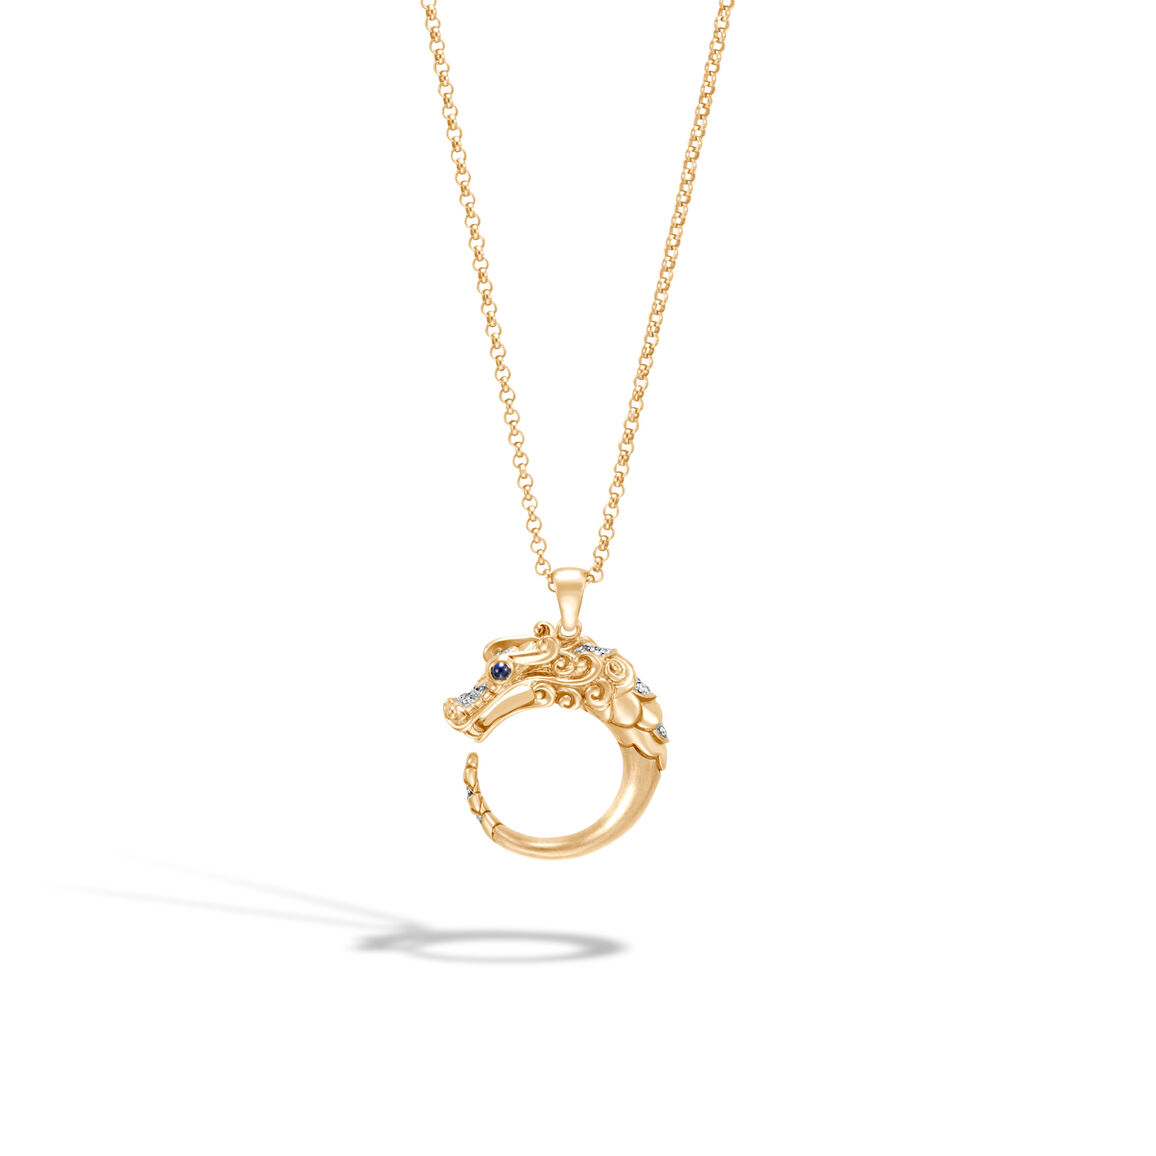 Legends Naga Pendant Necklace in Brushed 18K Gold, Diamonds